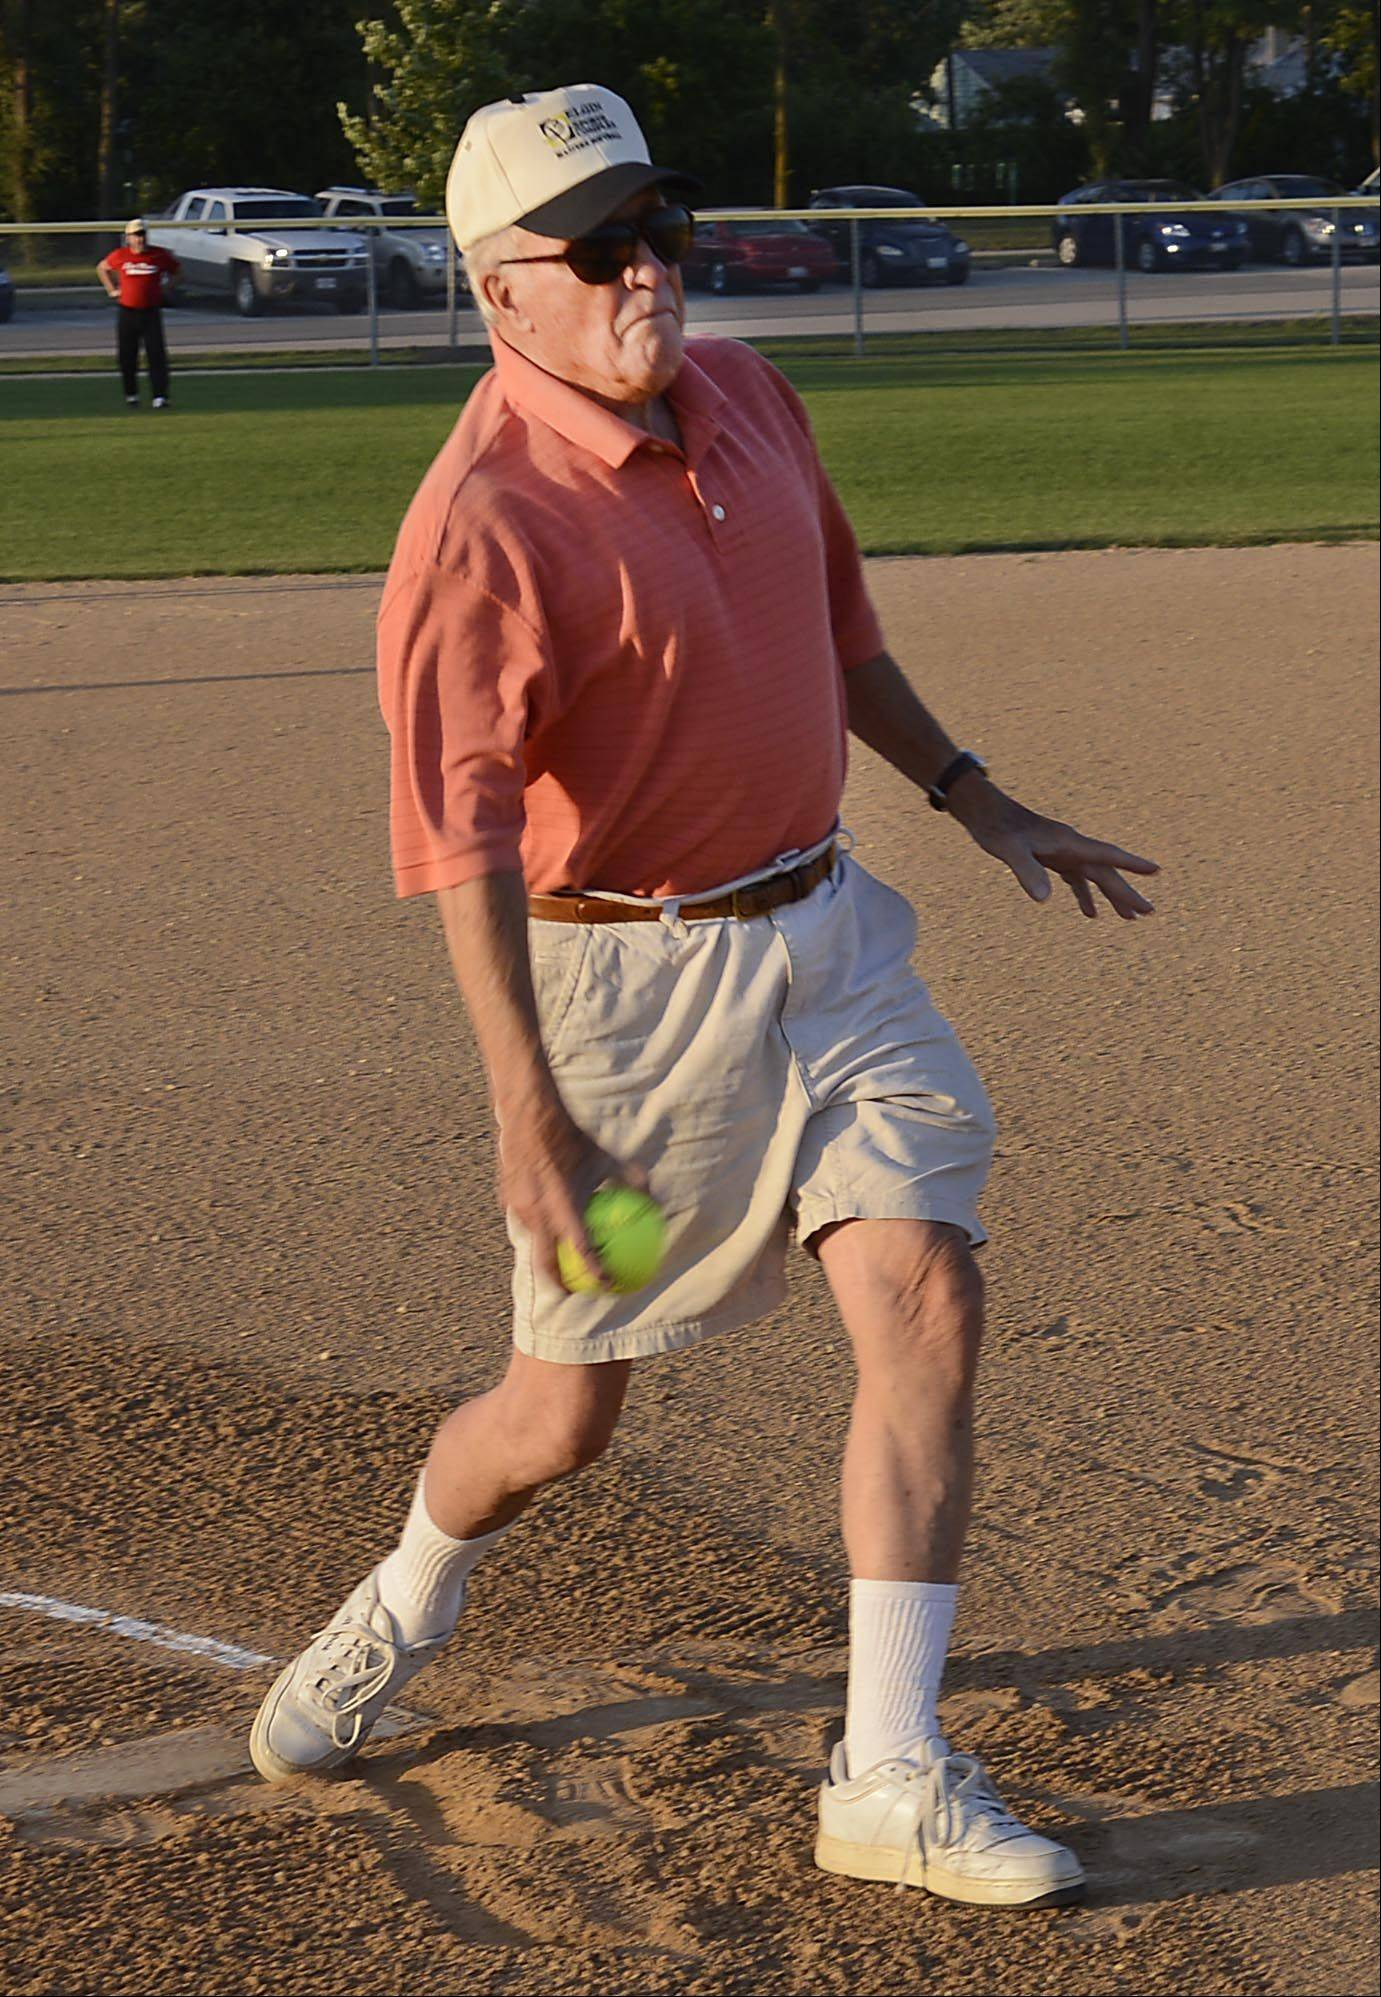 Bud Wilson throws the ceremonial first pitch Tuesday to start the Elgin Masters Softball League playoff tournament. He was honored with a trophy to thank him for keeping the league together since starting it in 1984.